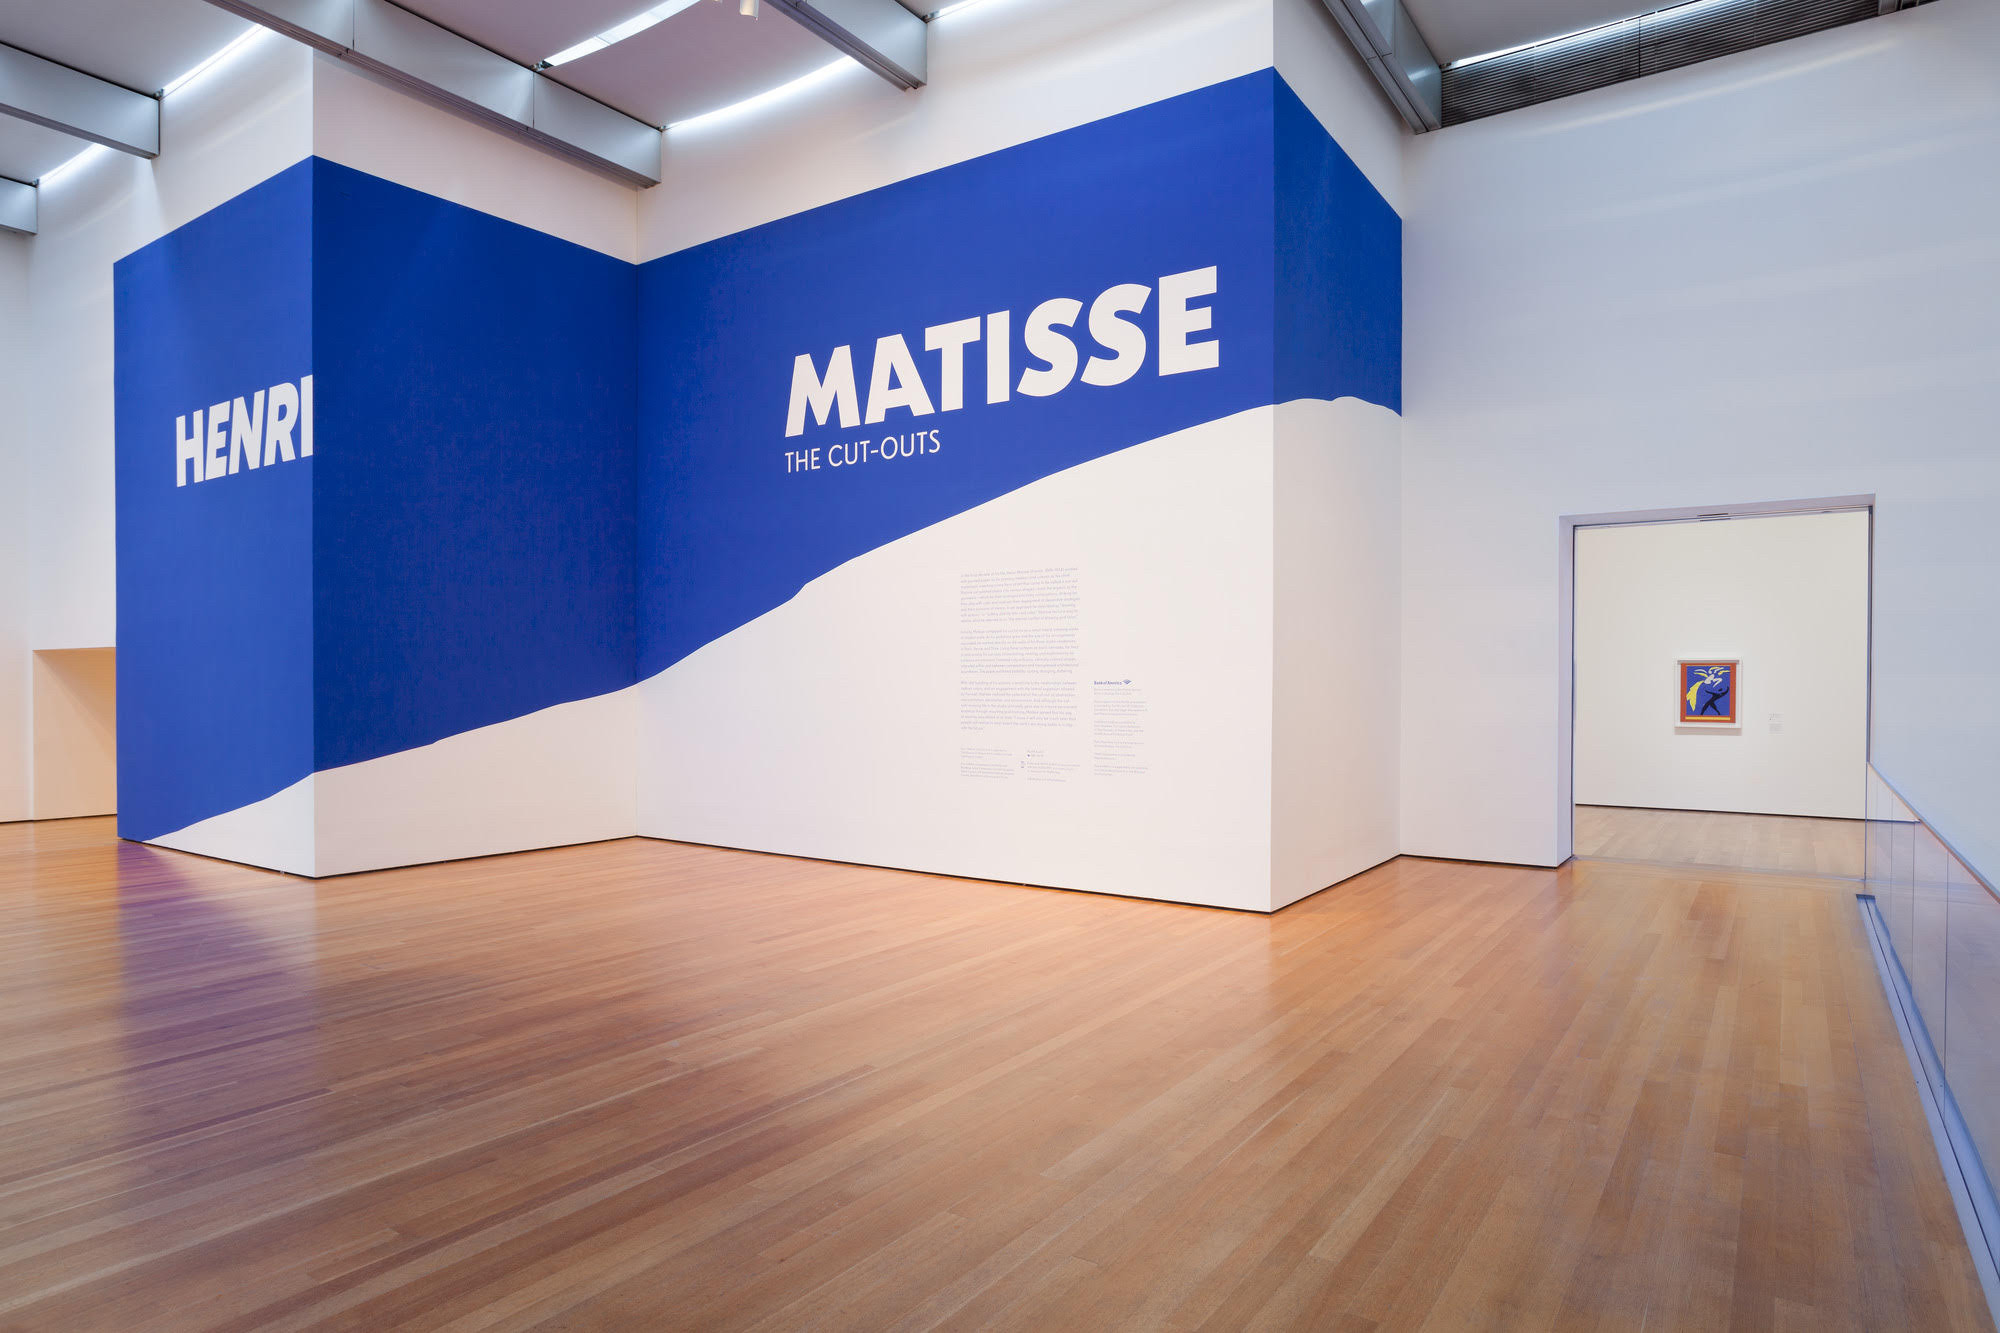 Title wall for Henri Matisse: The Cut-Outs exhibition. October 12, 2014–February 10, 2015. The Museum of Modern Art